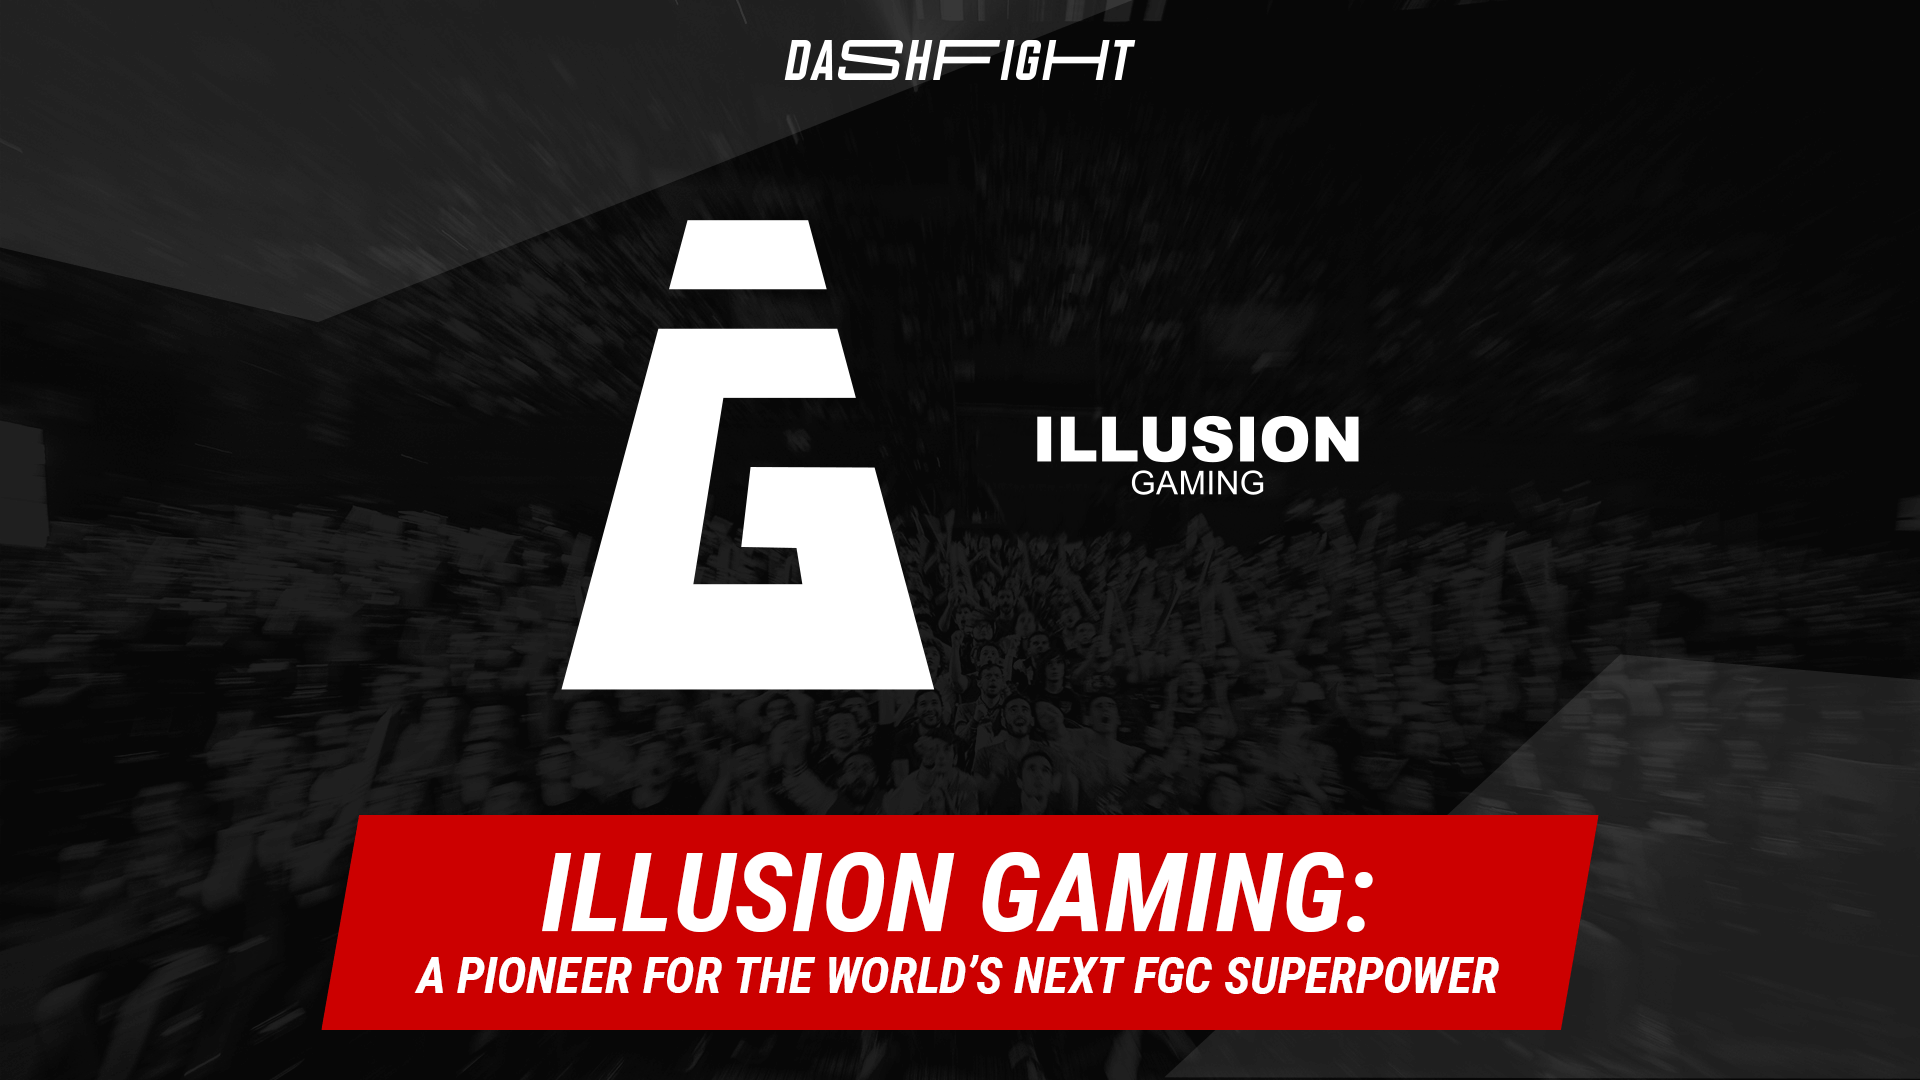 Illusion Gaming: A Pioneer for the World's Next FGC Superpower